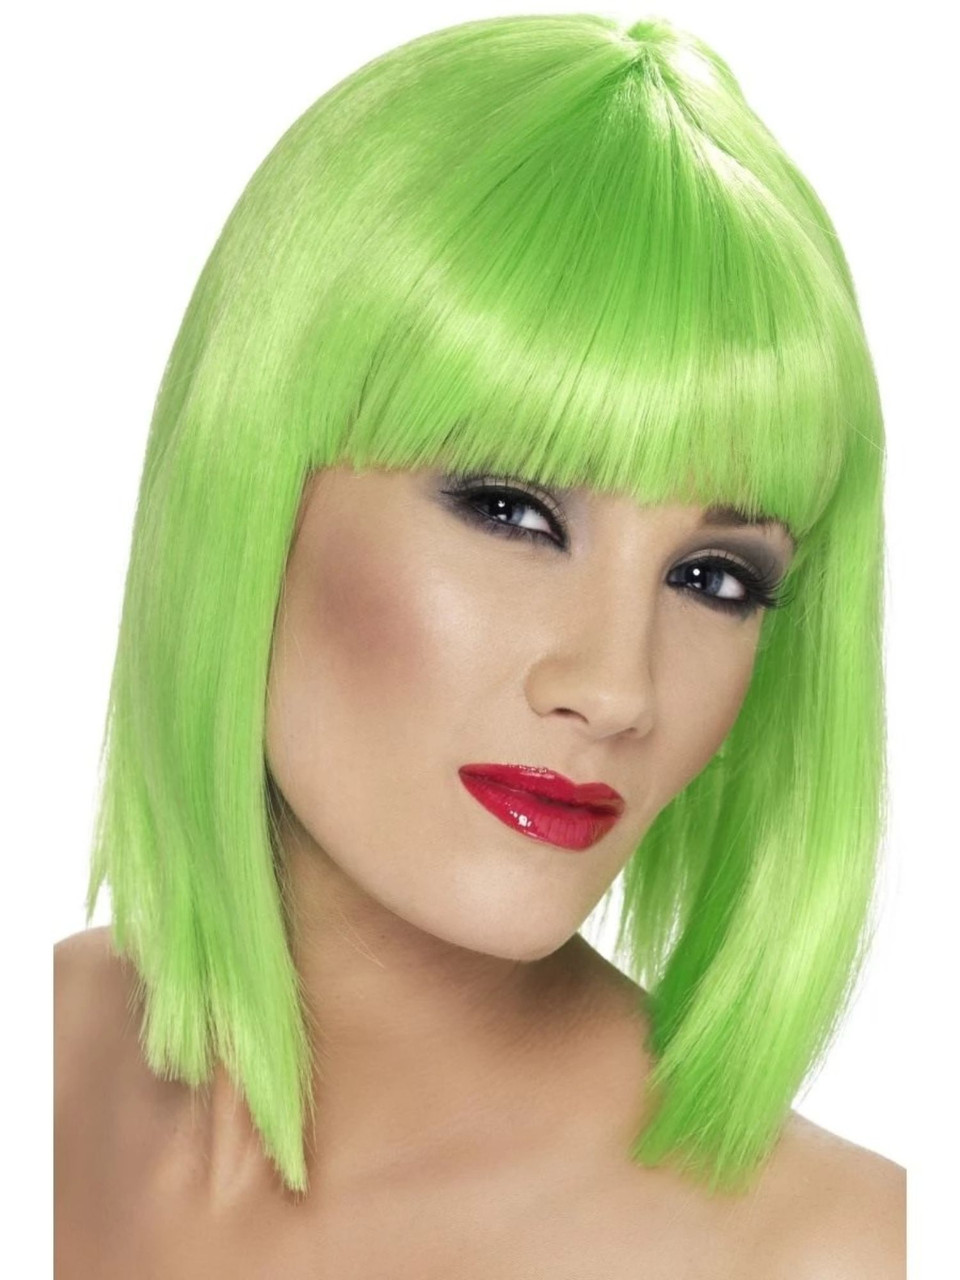 Halloween Costume Accessory Blunt Bob Blonde Wig with Bangs